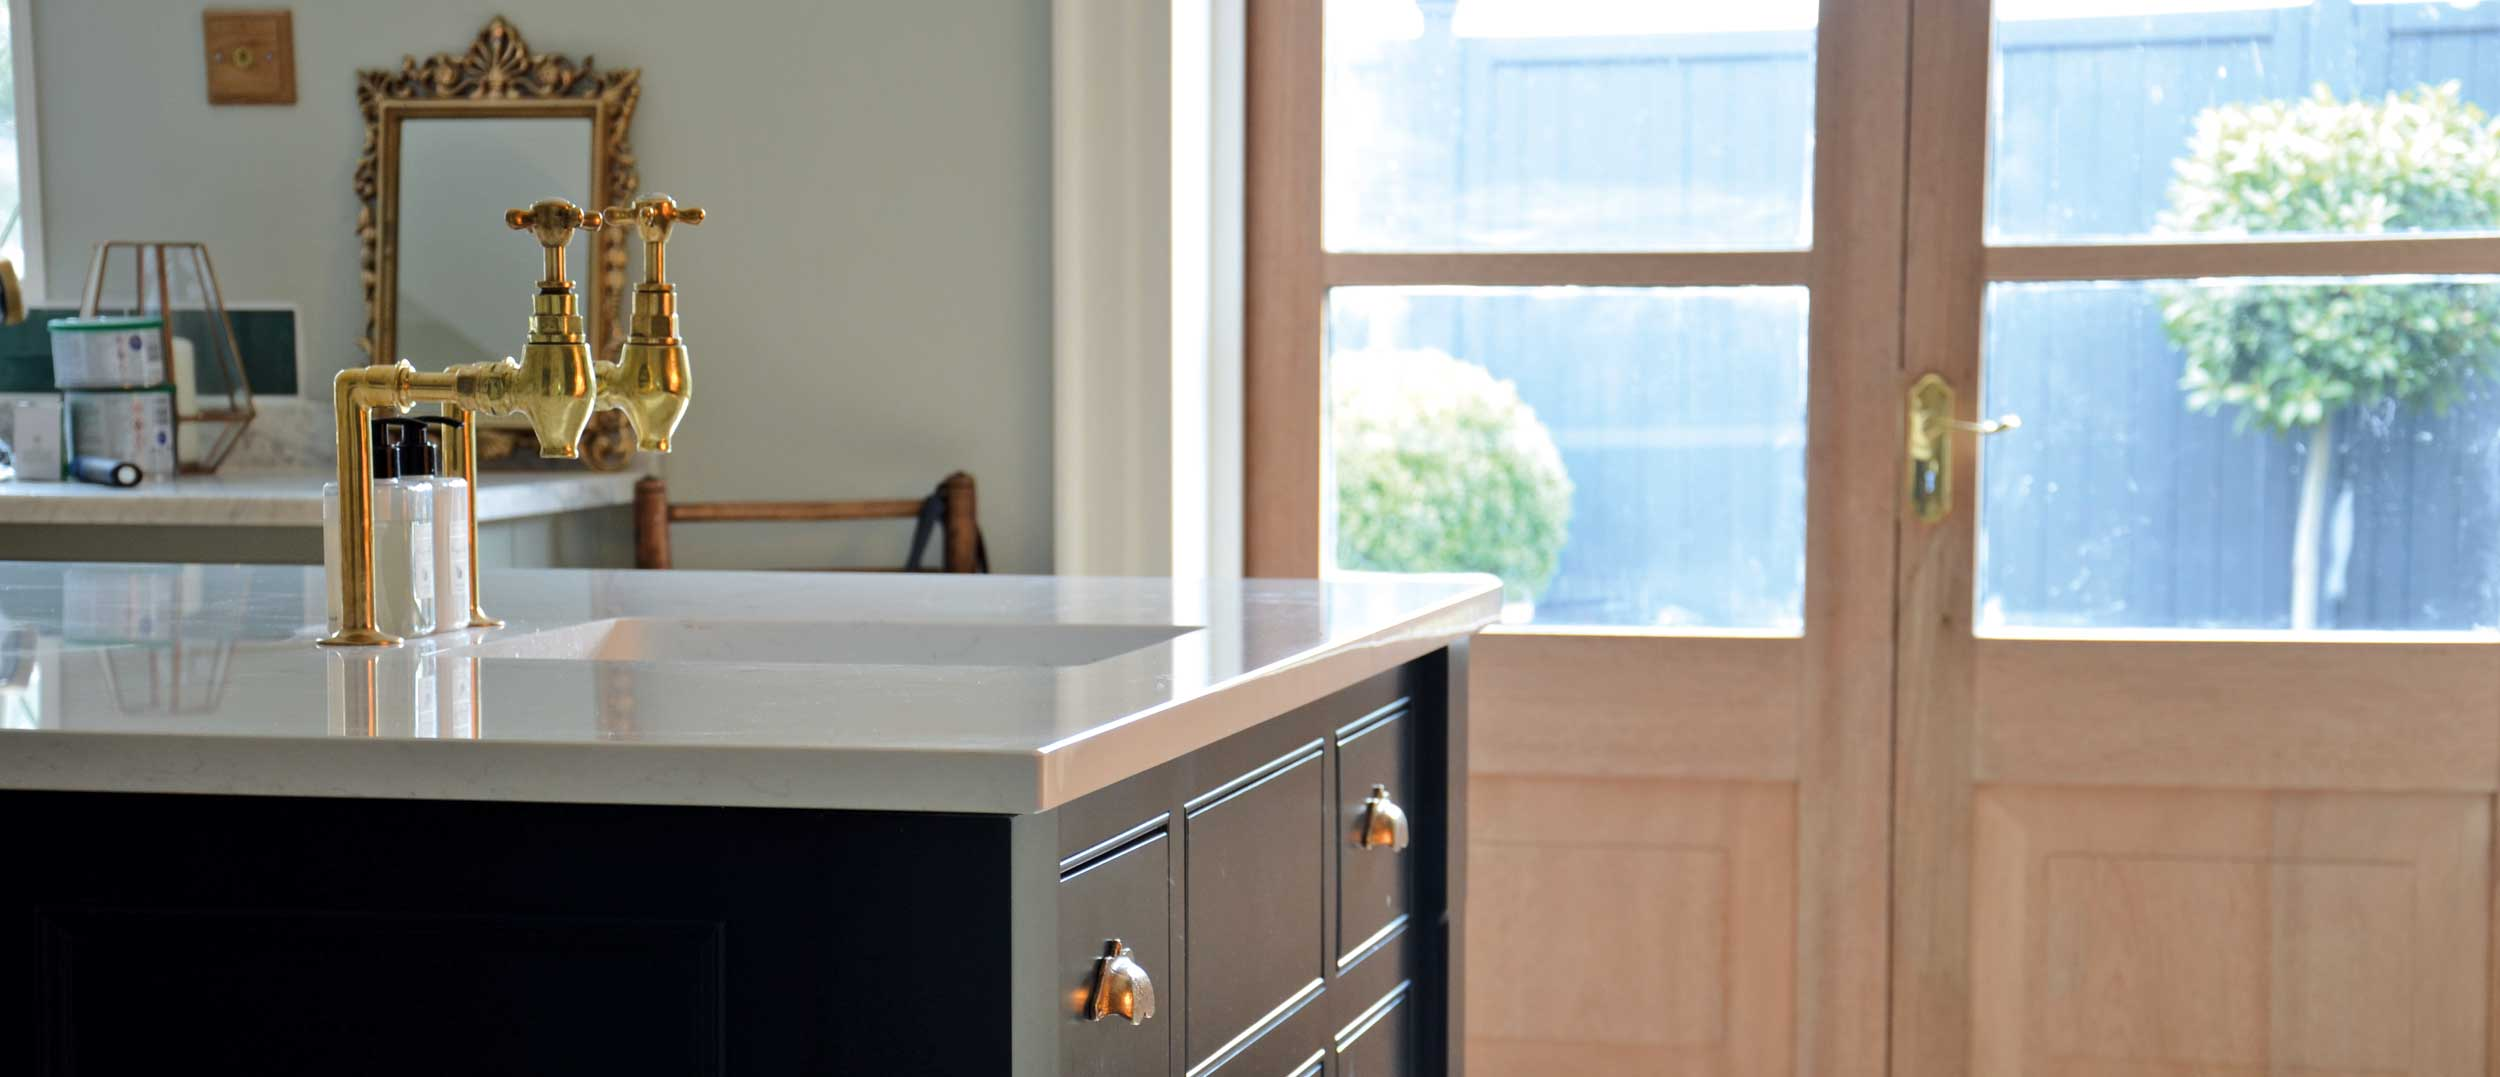 Made to measure bespoke kitchen islands and units.